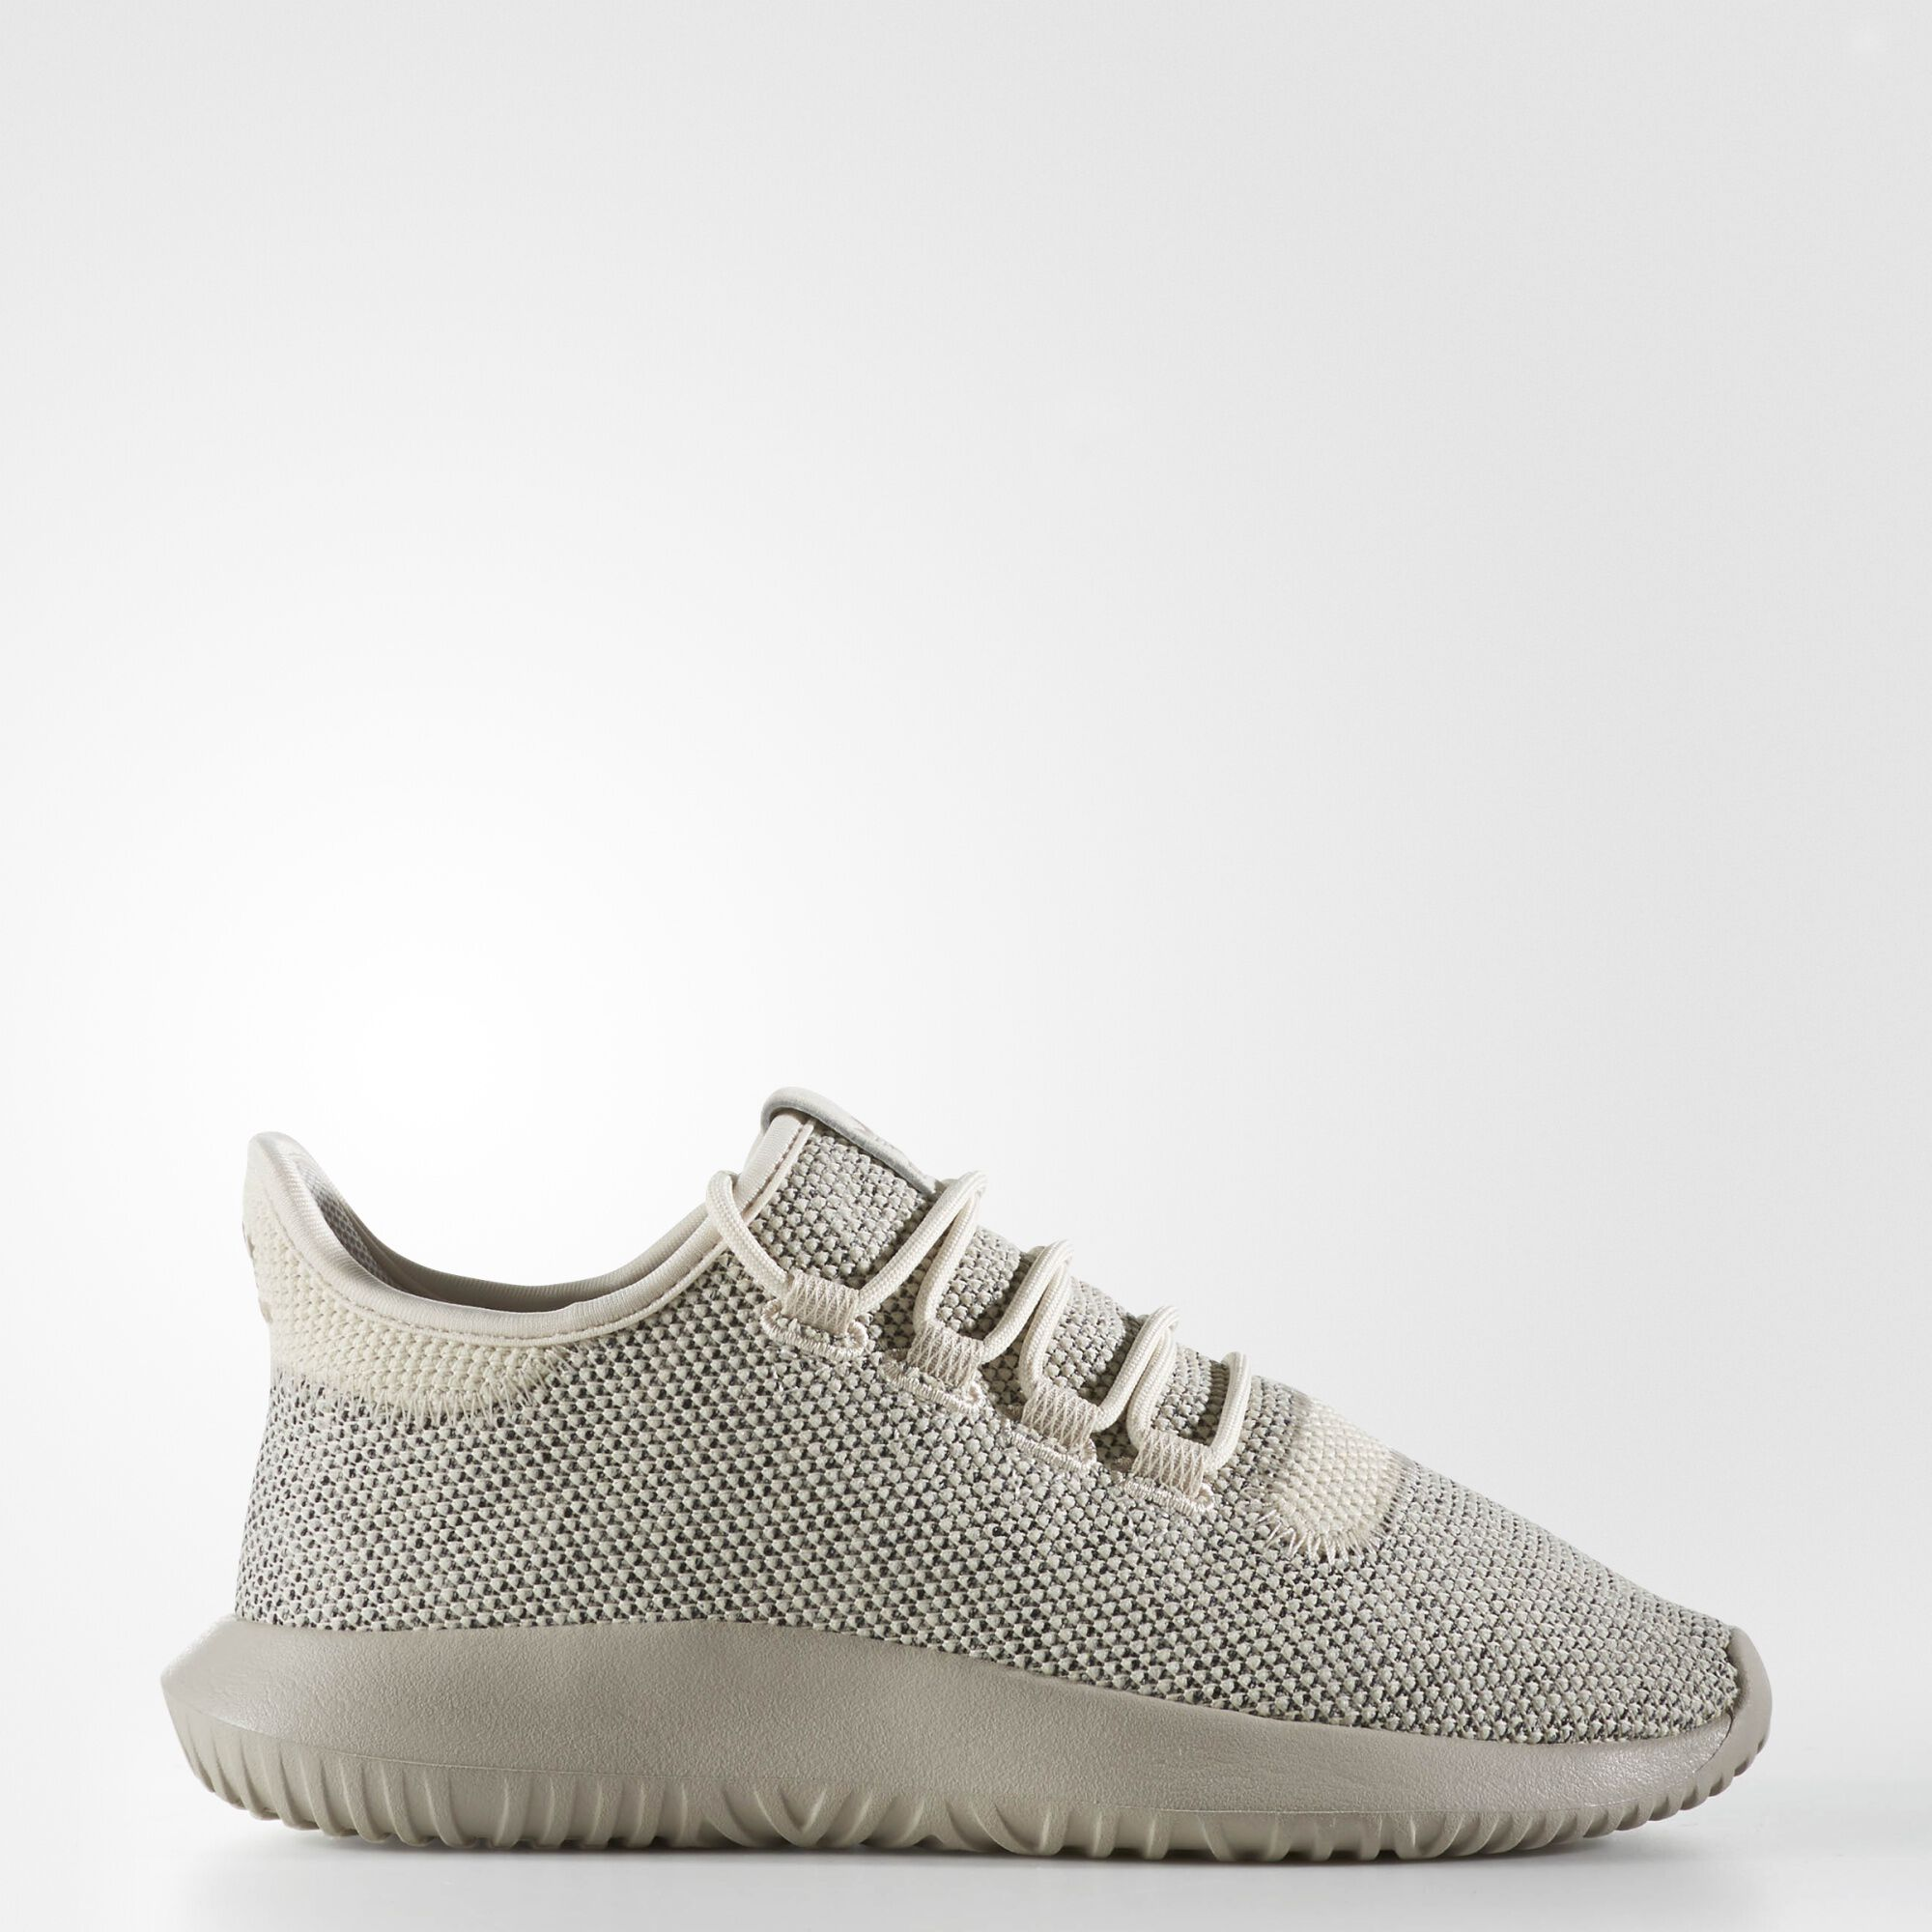 Adidas Tubular Shoes